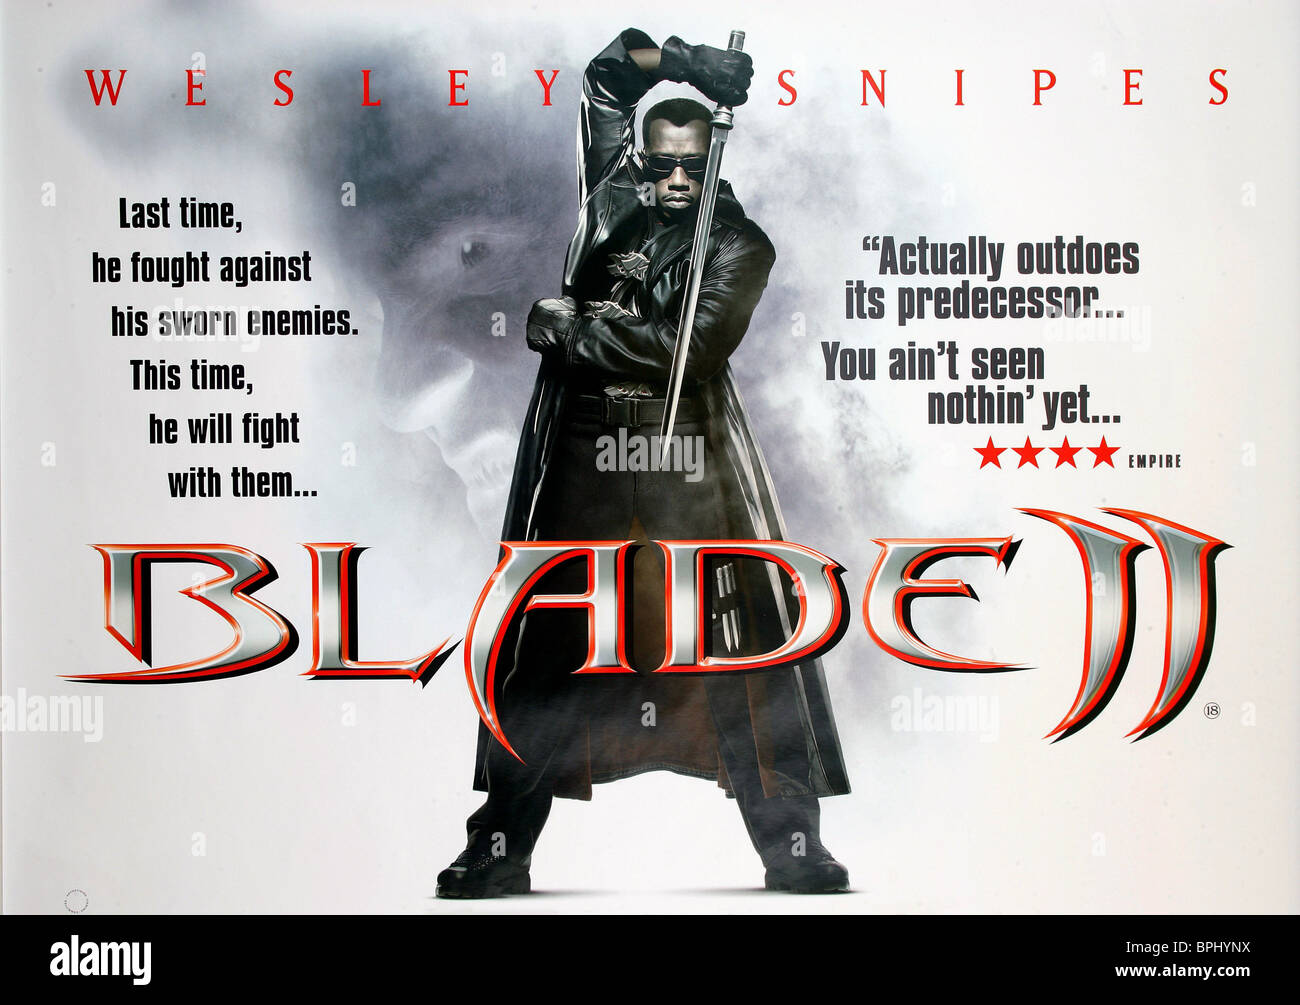 Wesley Snipes Film Poster Blade Ii 2002 Stock Photo Alamy